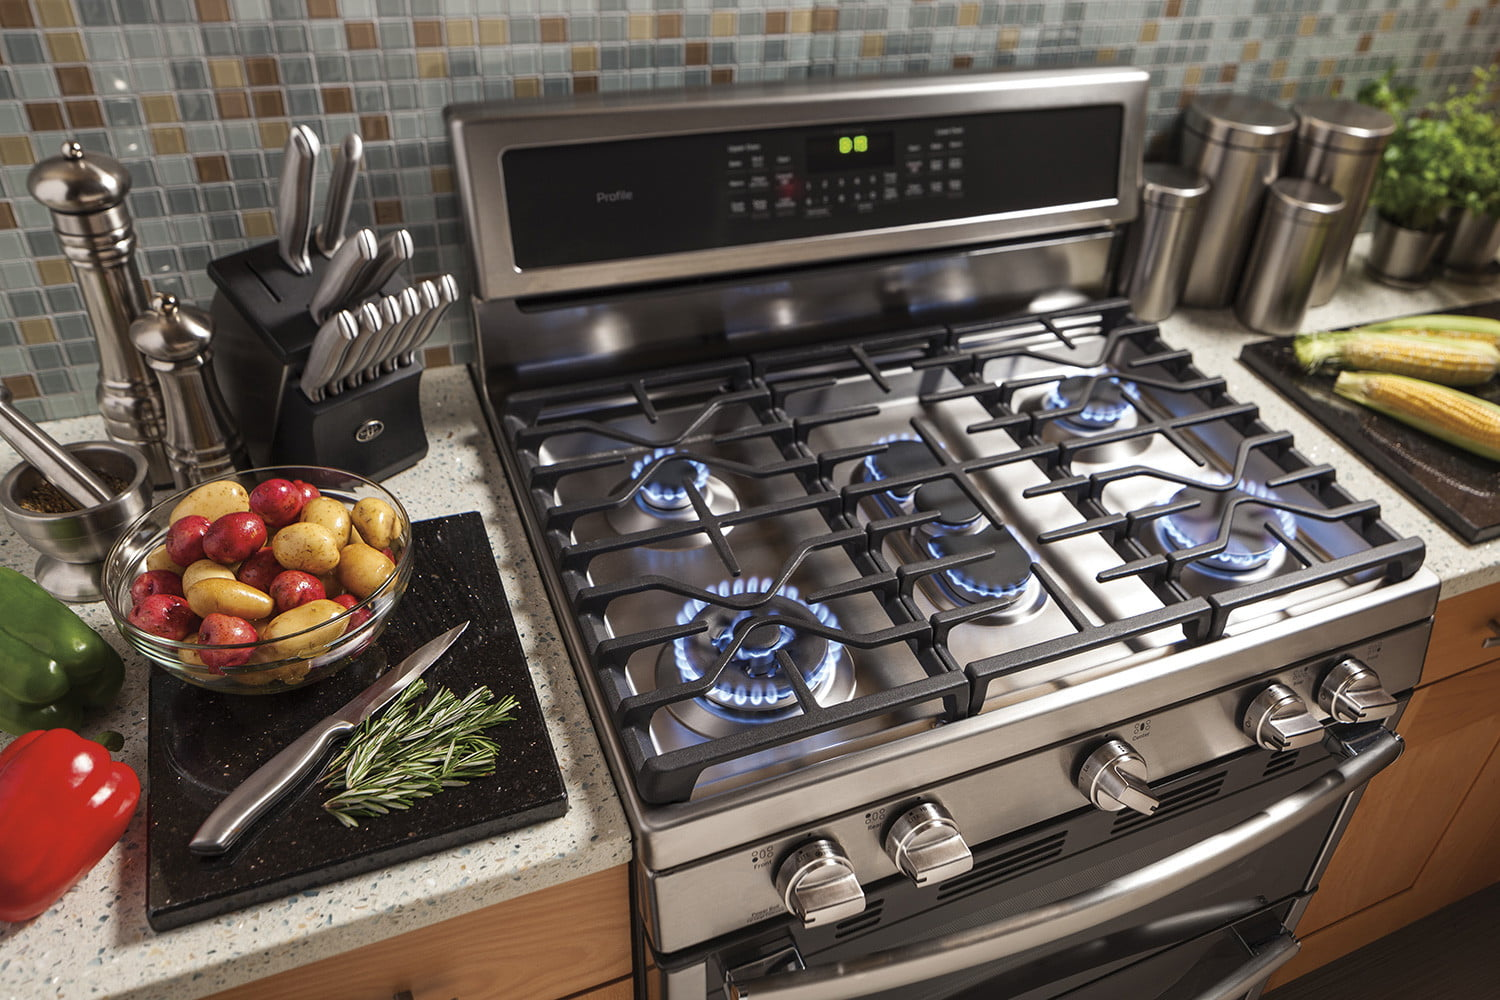 Repair of electric stoves is expensive. How to choose a quality household appliance